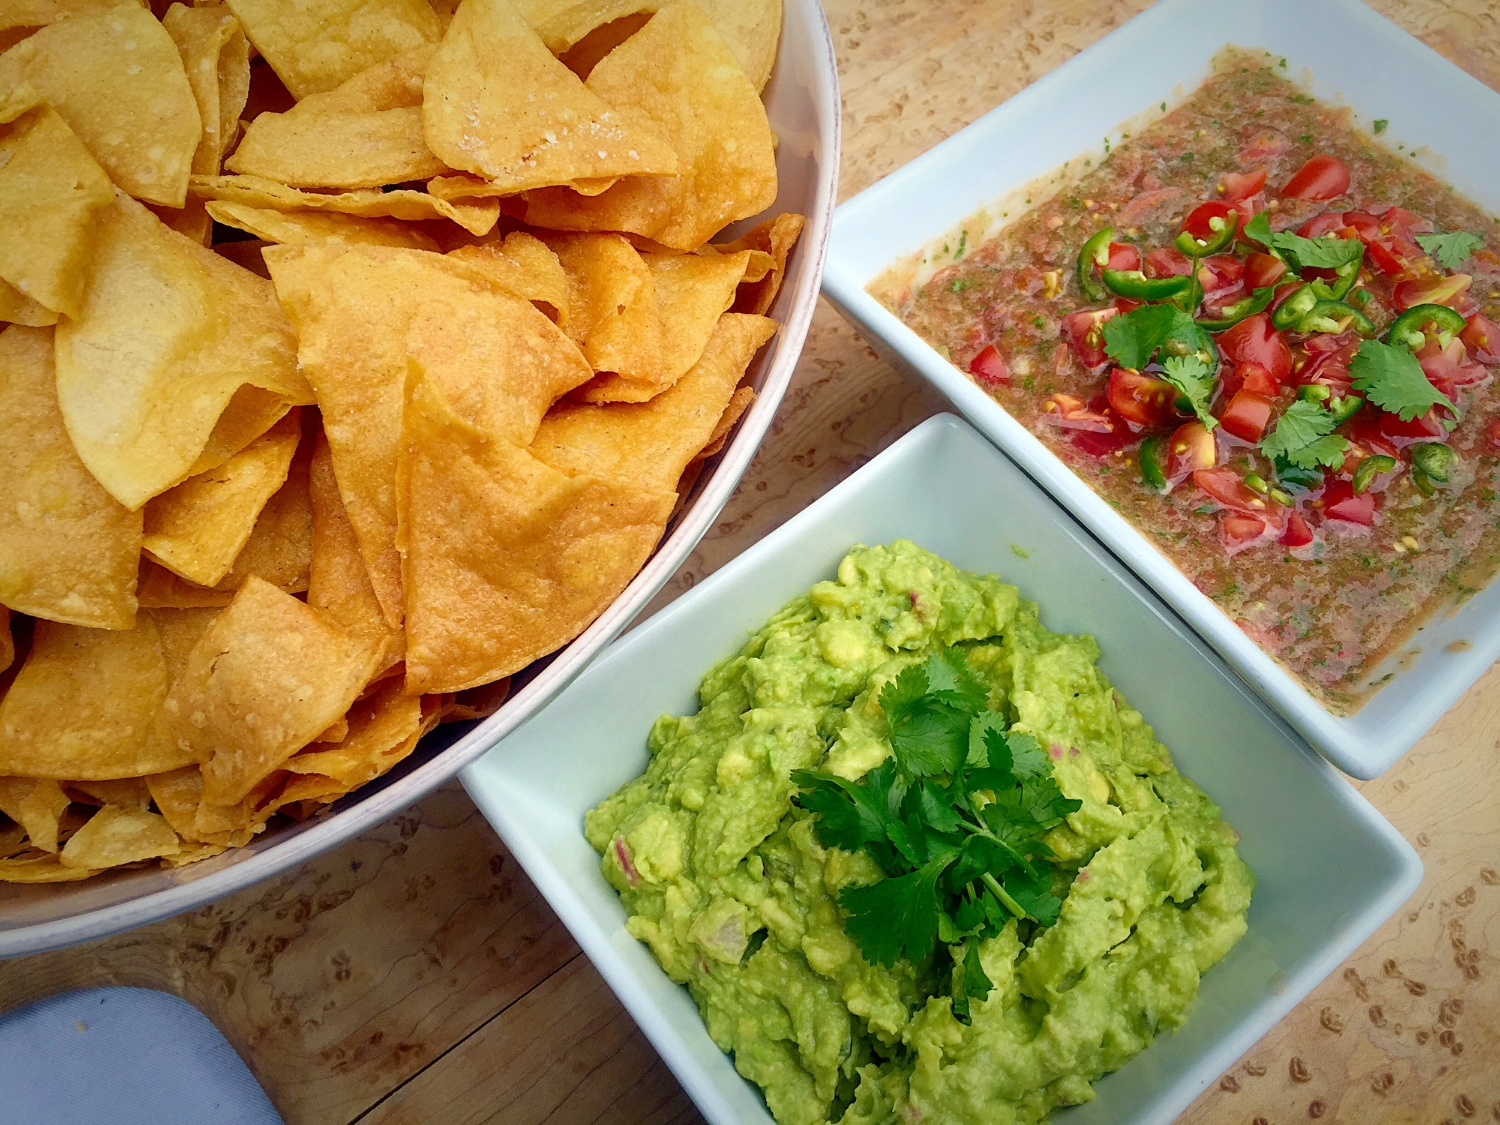 WHIP'S CHIPS GUAC AND SALSA